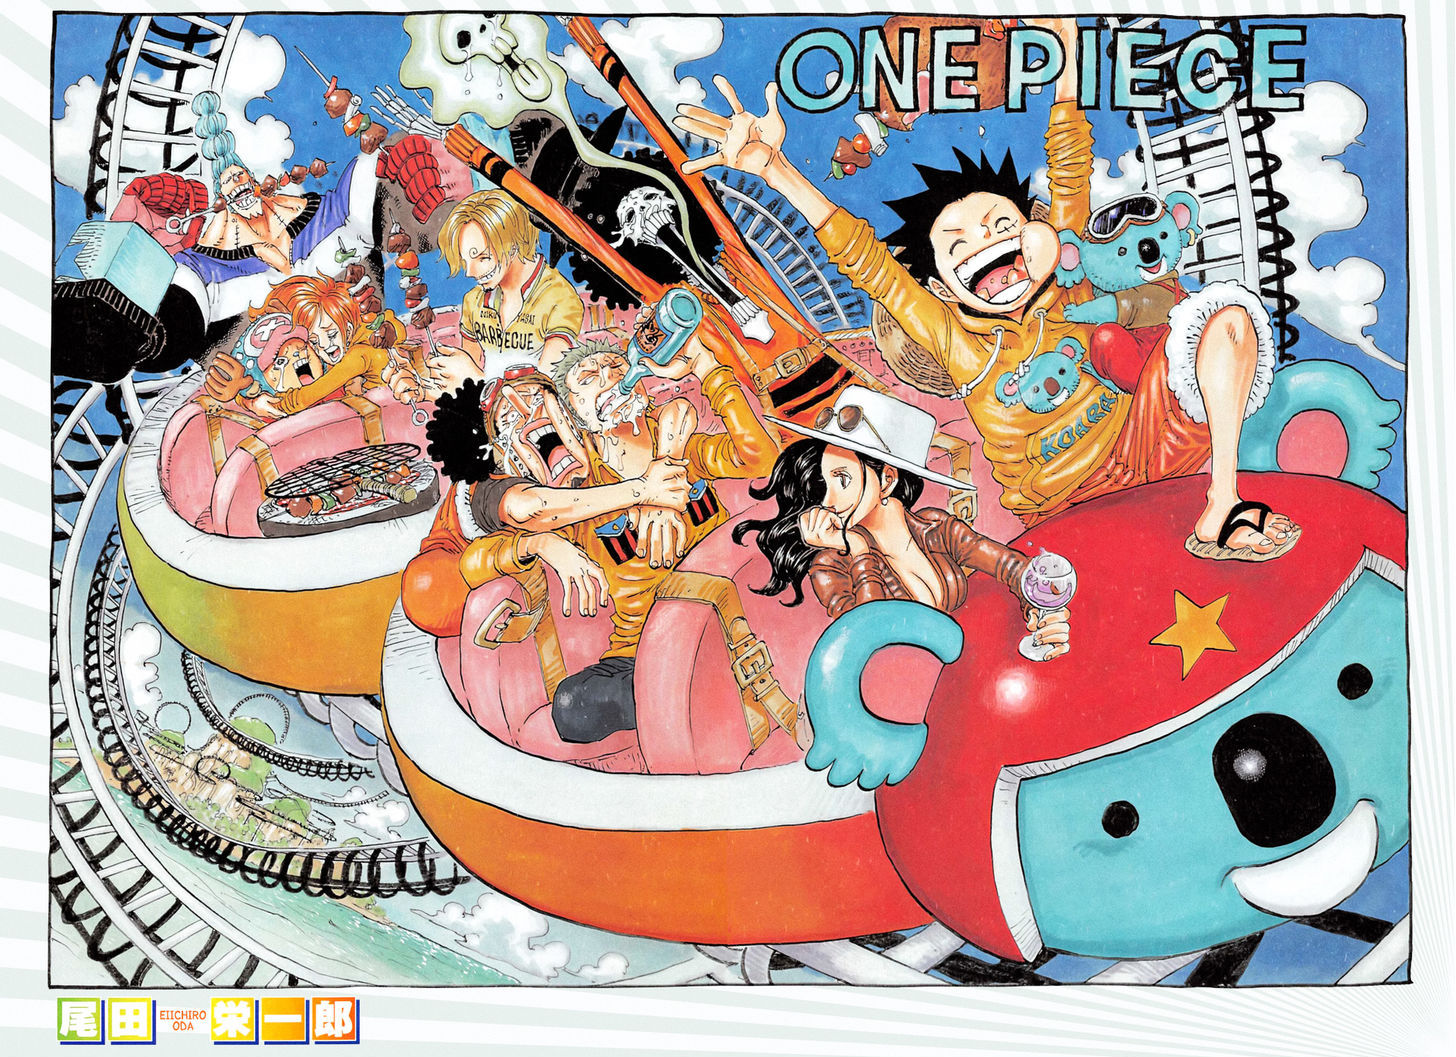 https://im.nineanime.com/comics/pic9/32/96/3173/OnePiece8240946.jpg Page 1